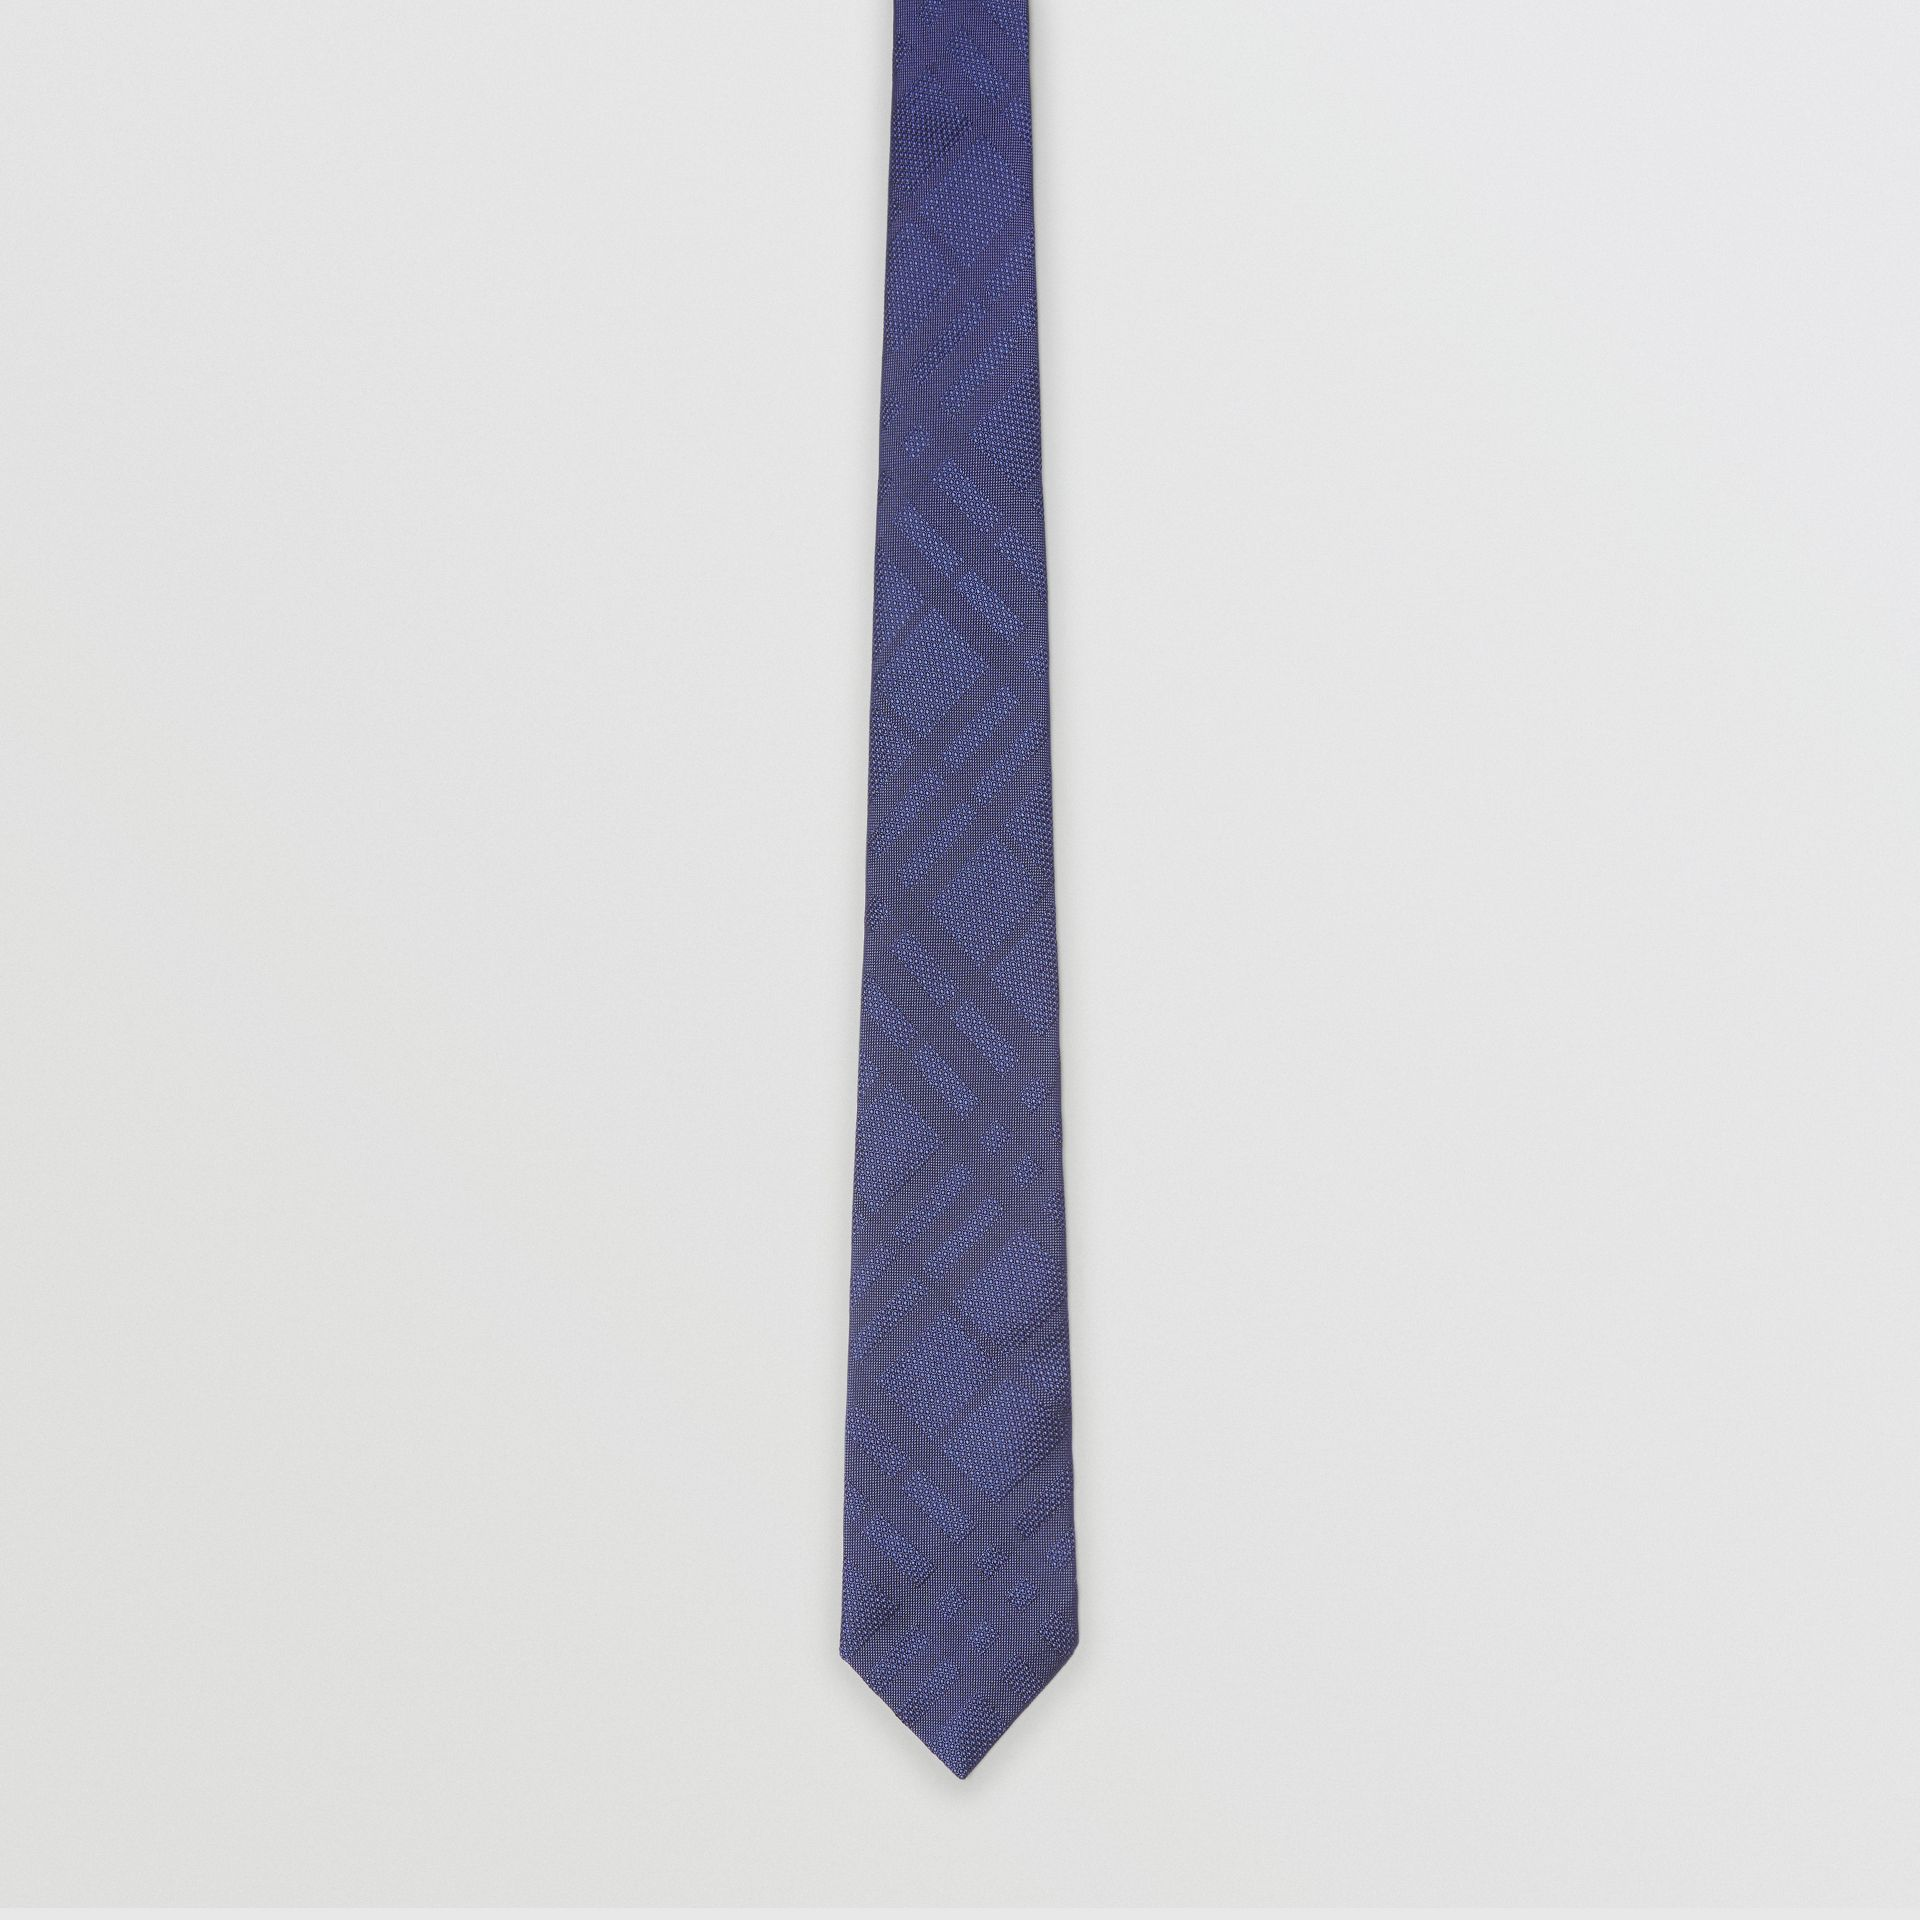 Classic Cut Check Silk Jacquard Tie in Blue - Men | Burberry - gallery image 3